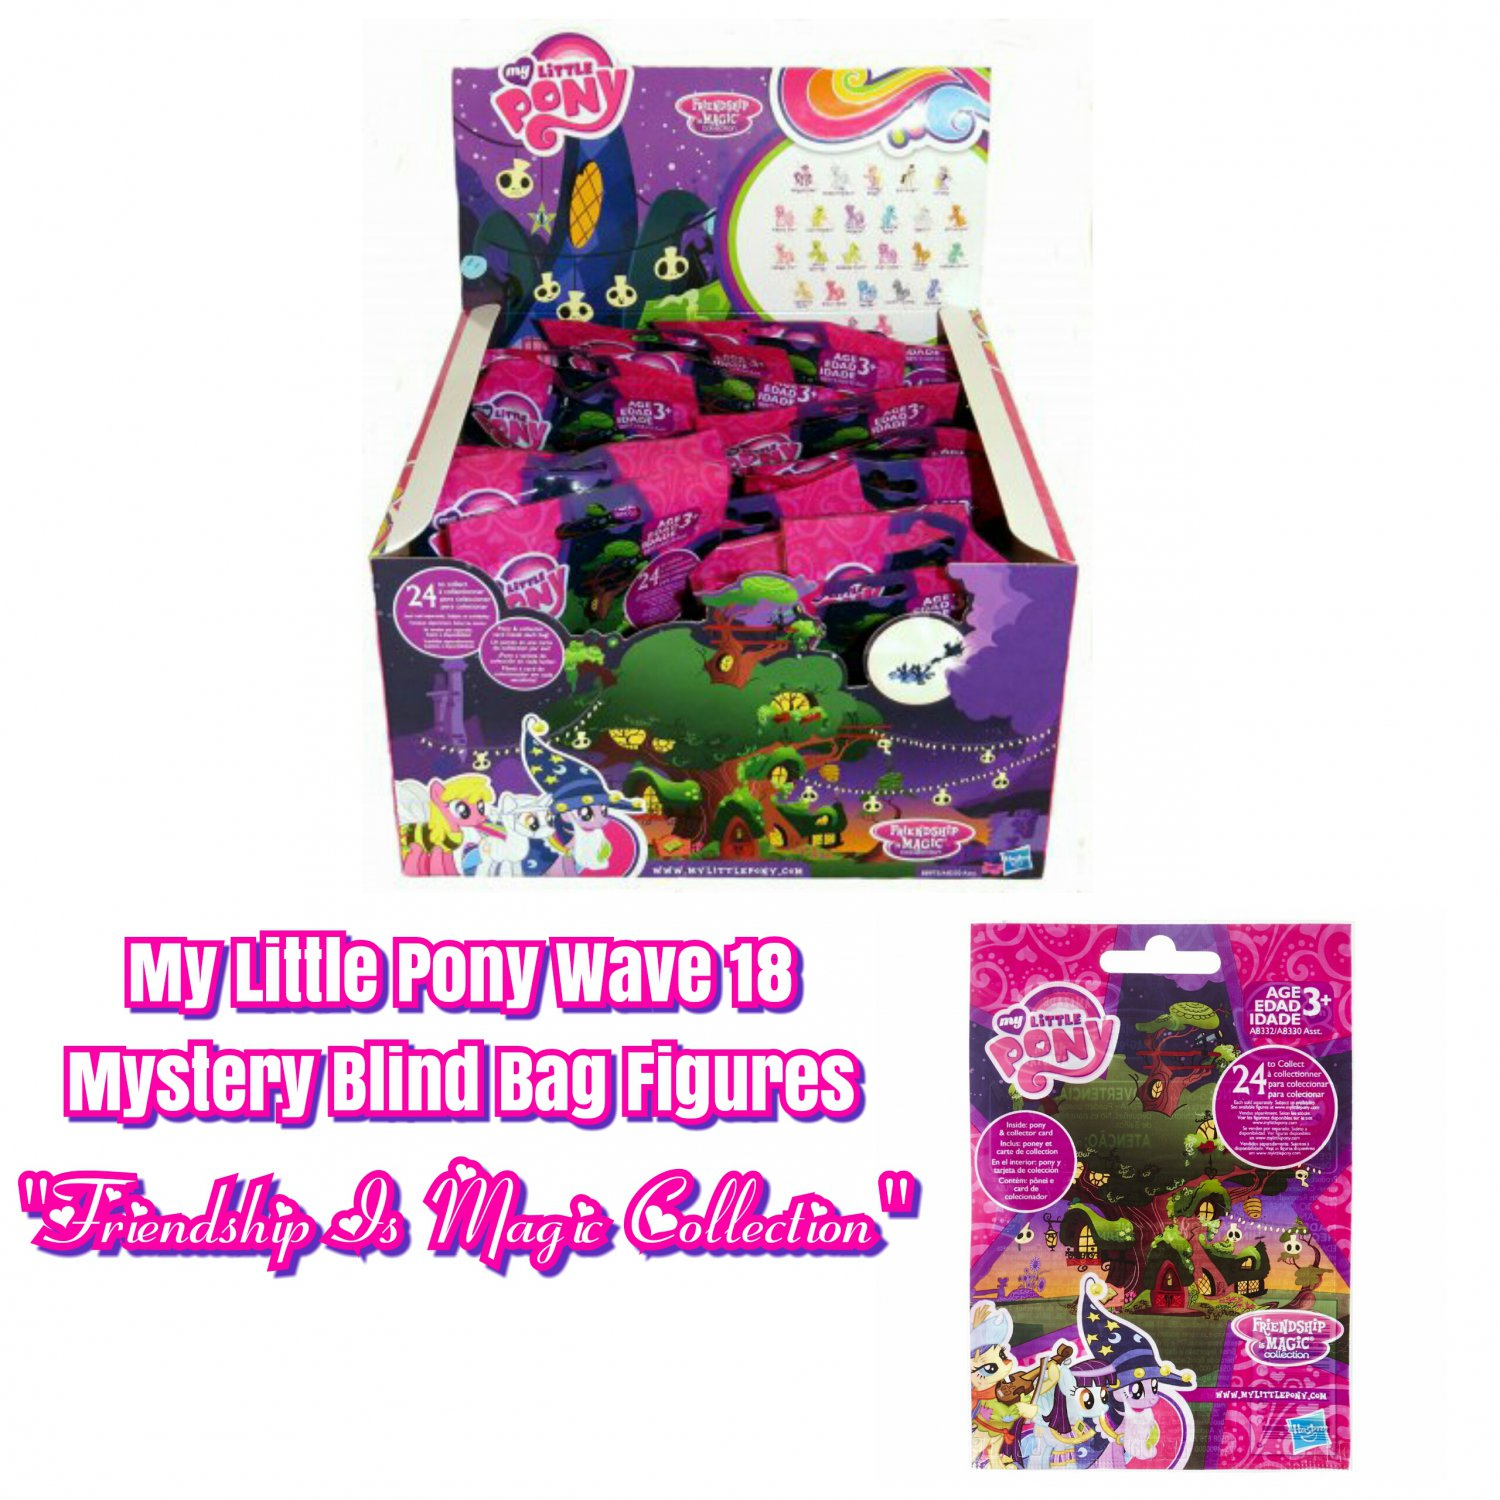 My Little Pony MLP Friendship is Magic Series / Wave 18 Mystery Blind Bag Figure �24 Sealed Packs